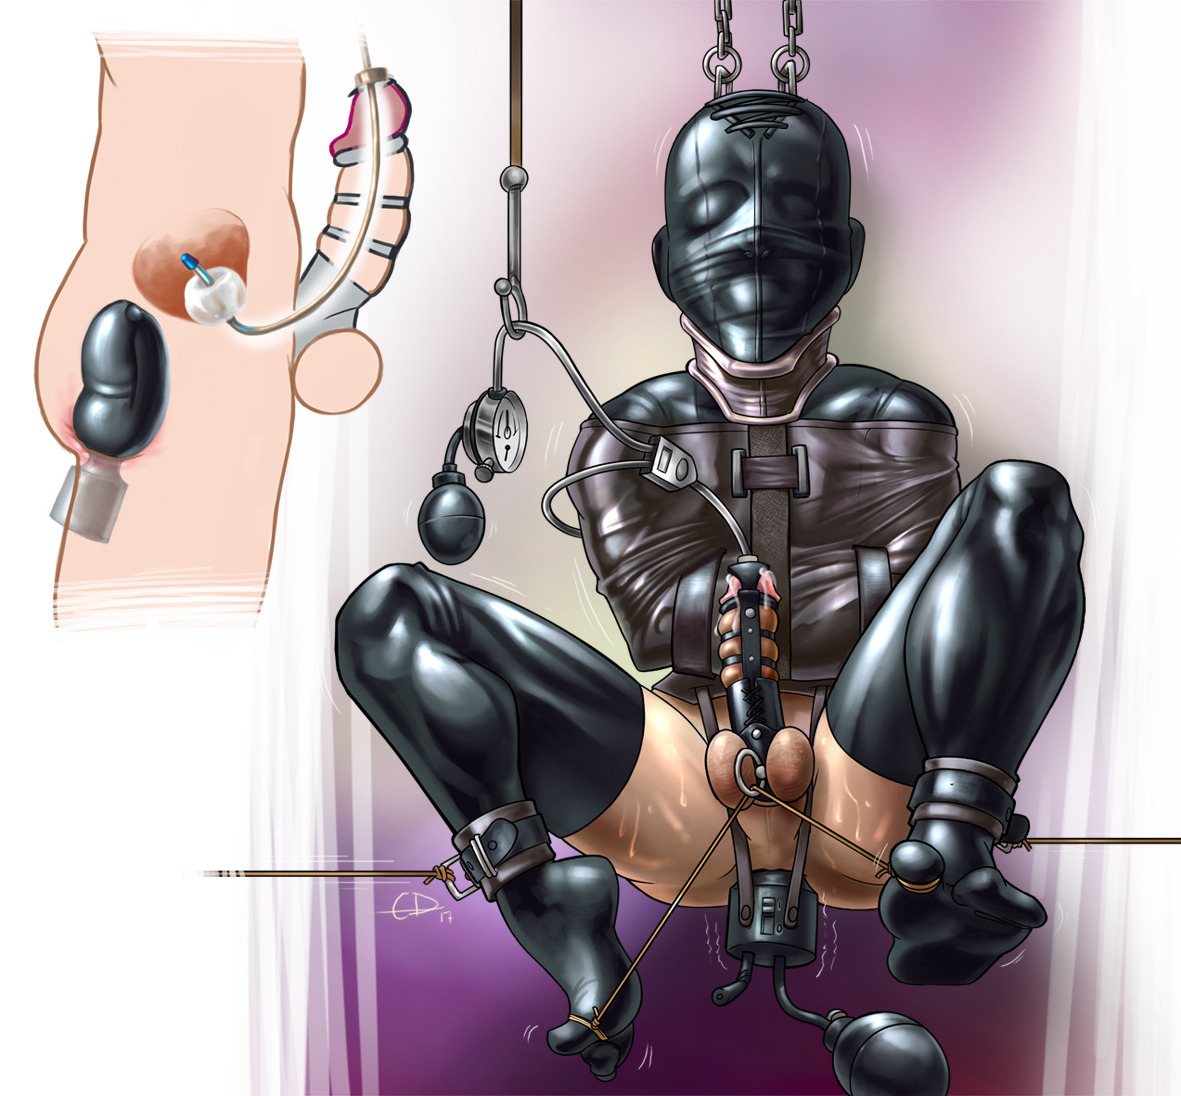 Bald mistress strapon and fisitng domination to curly male male anal, amateur femdom download free fisting